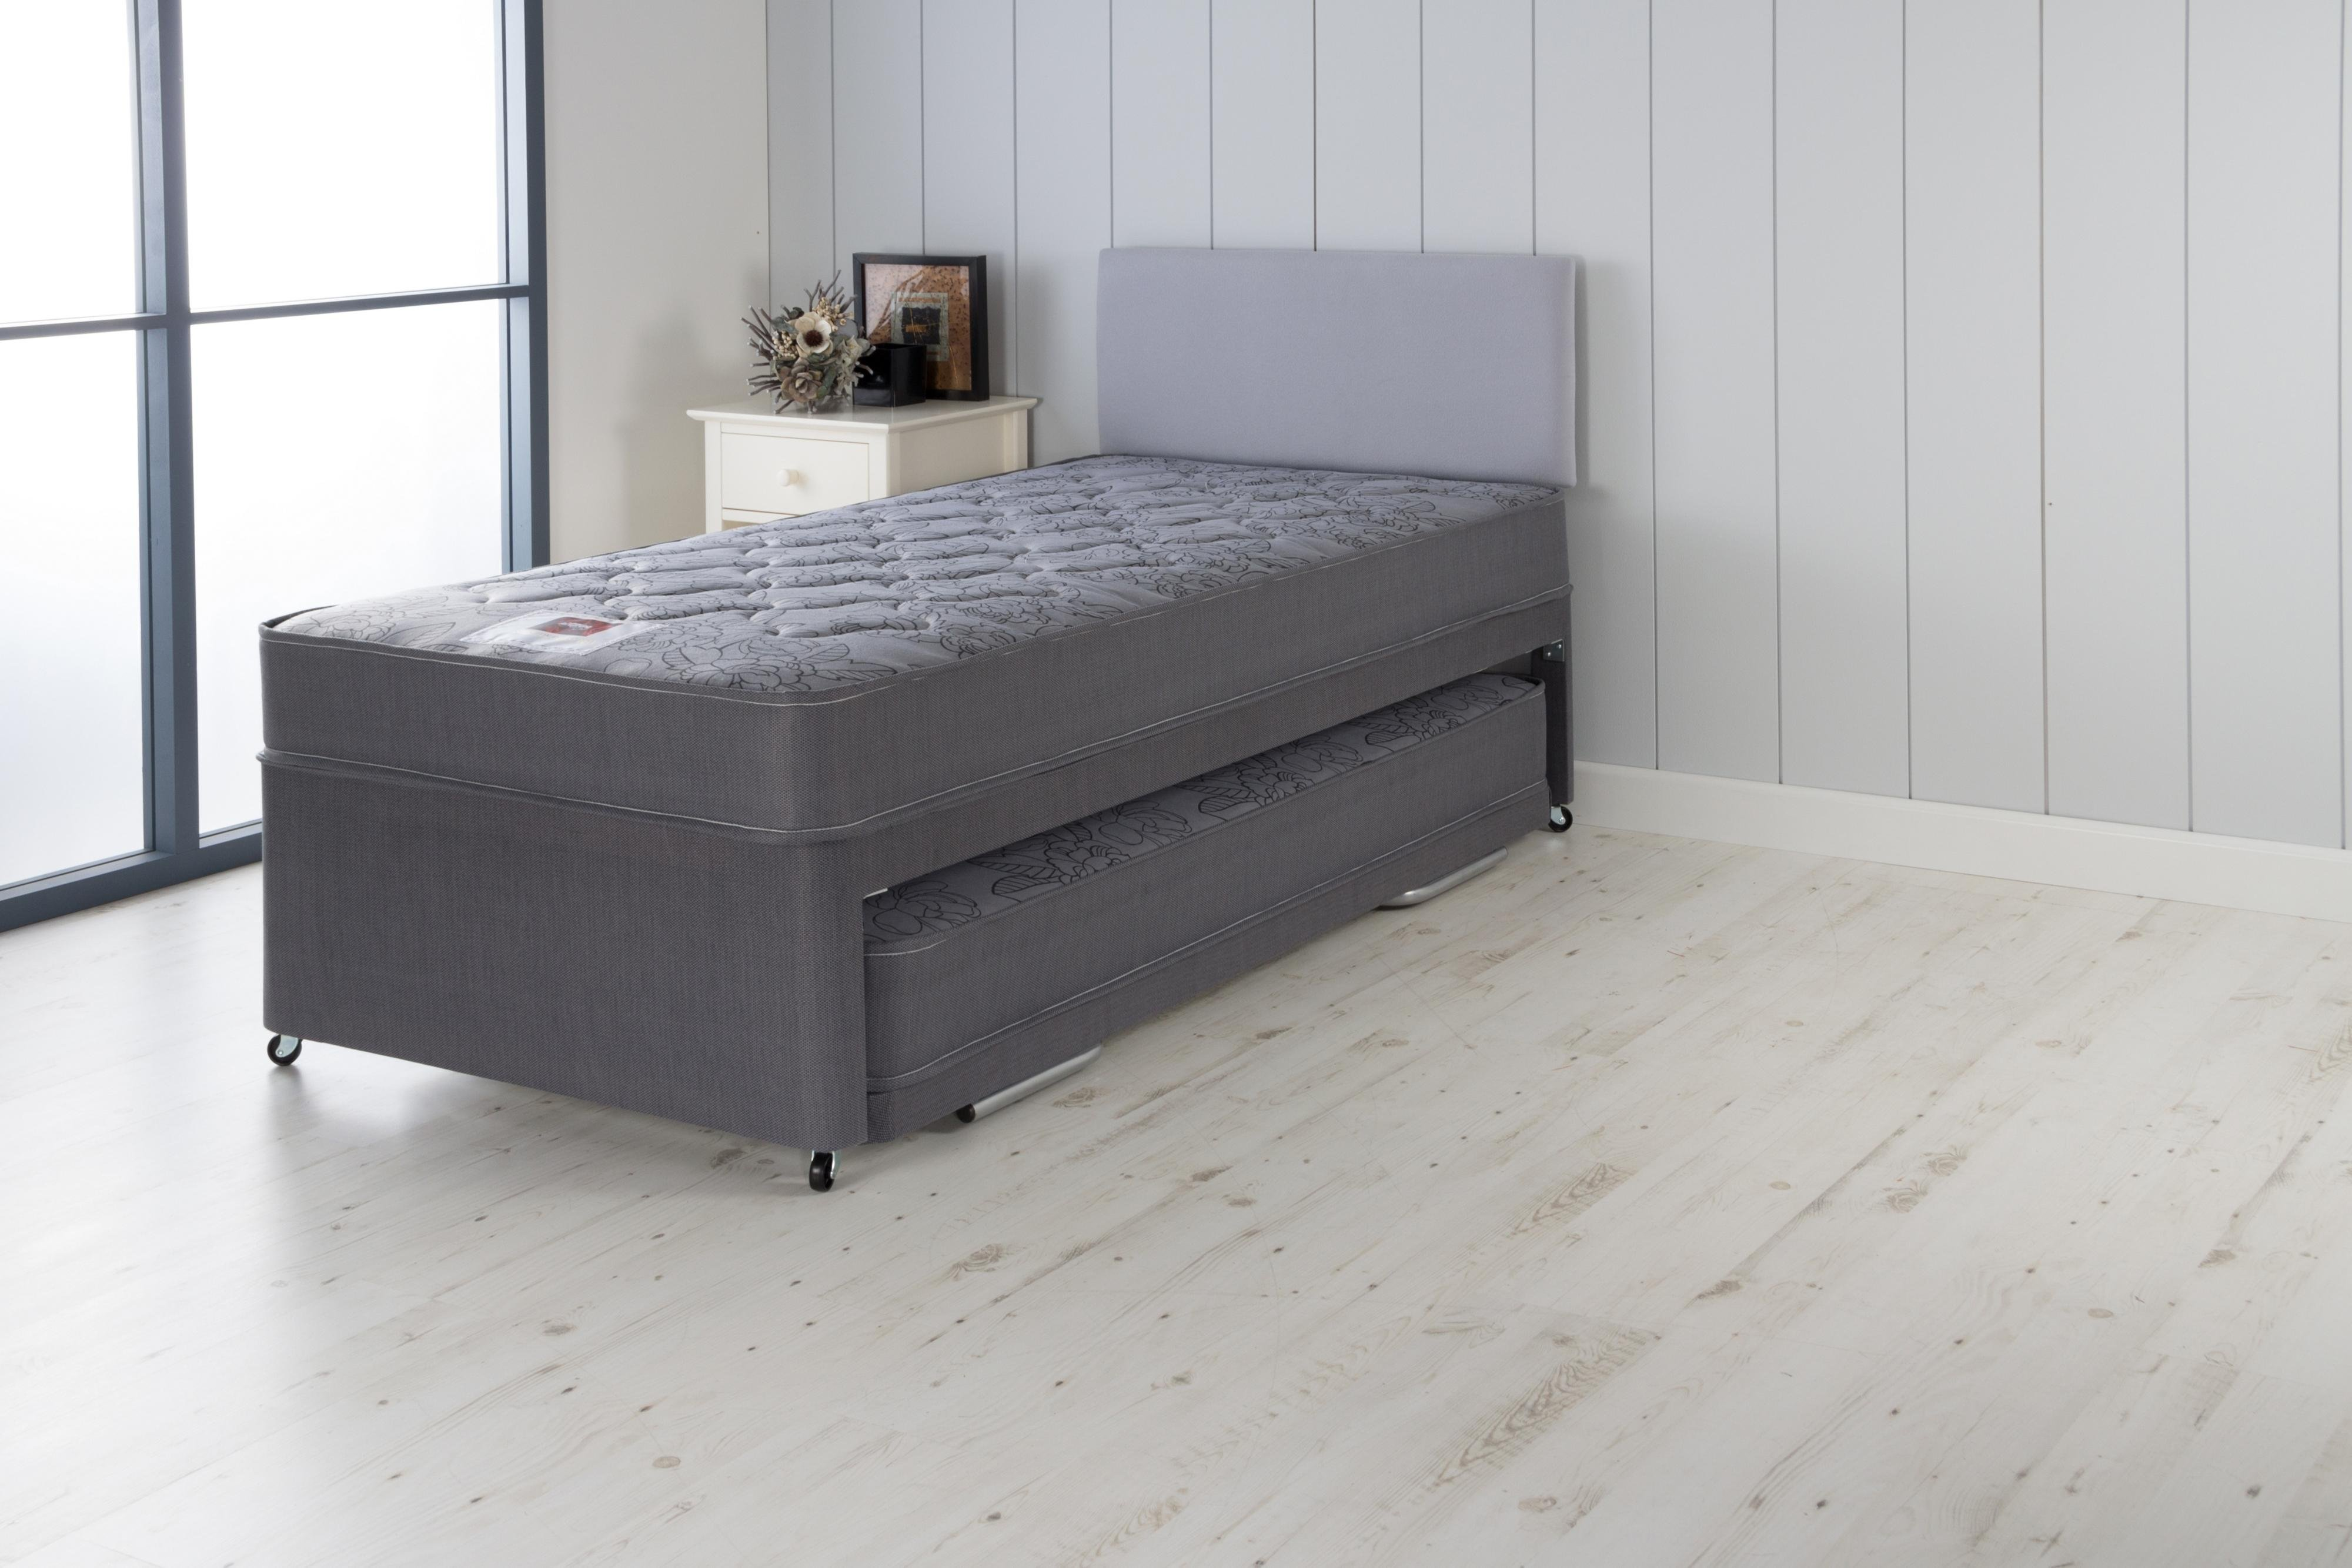 Image of Airsprung - Linford Single - Guestbed